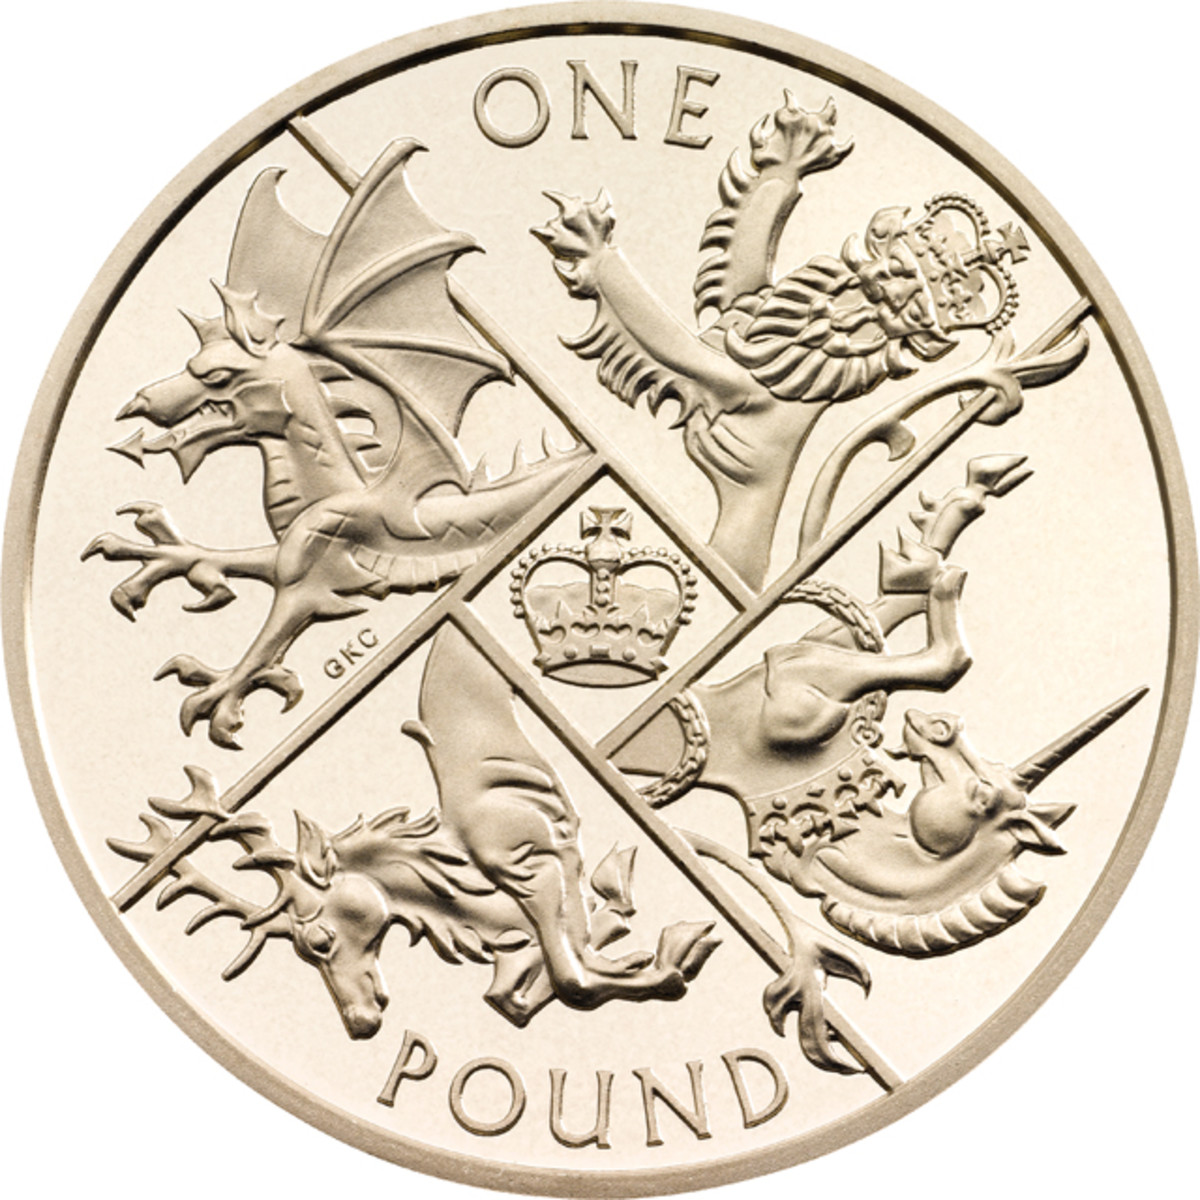 The heraldic reverse of what will be Britain's last ever round pound by Gregory Cameron.